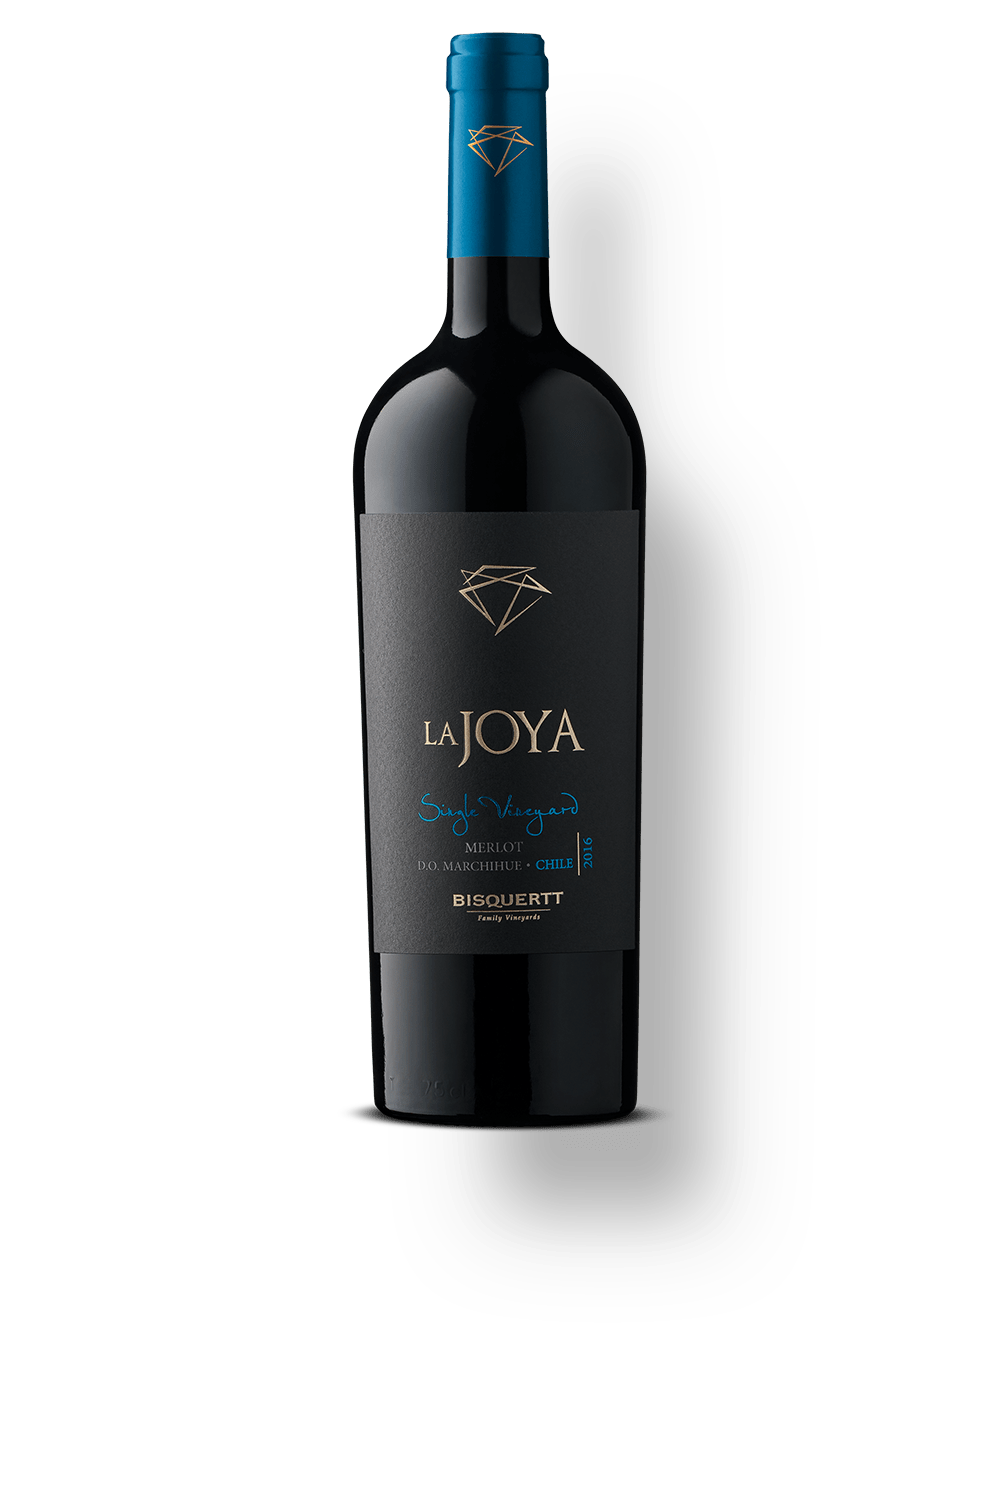 Vinho_Tinto_Vina_Bisquertt_La_Joya_Single_Vineyard_Merlot_021369